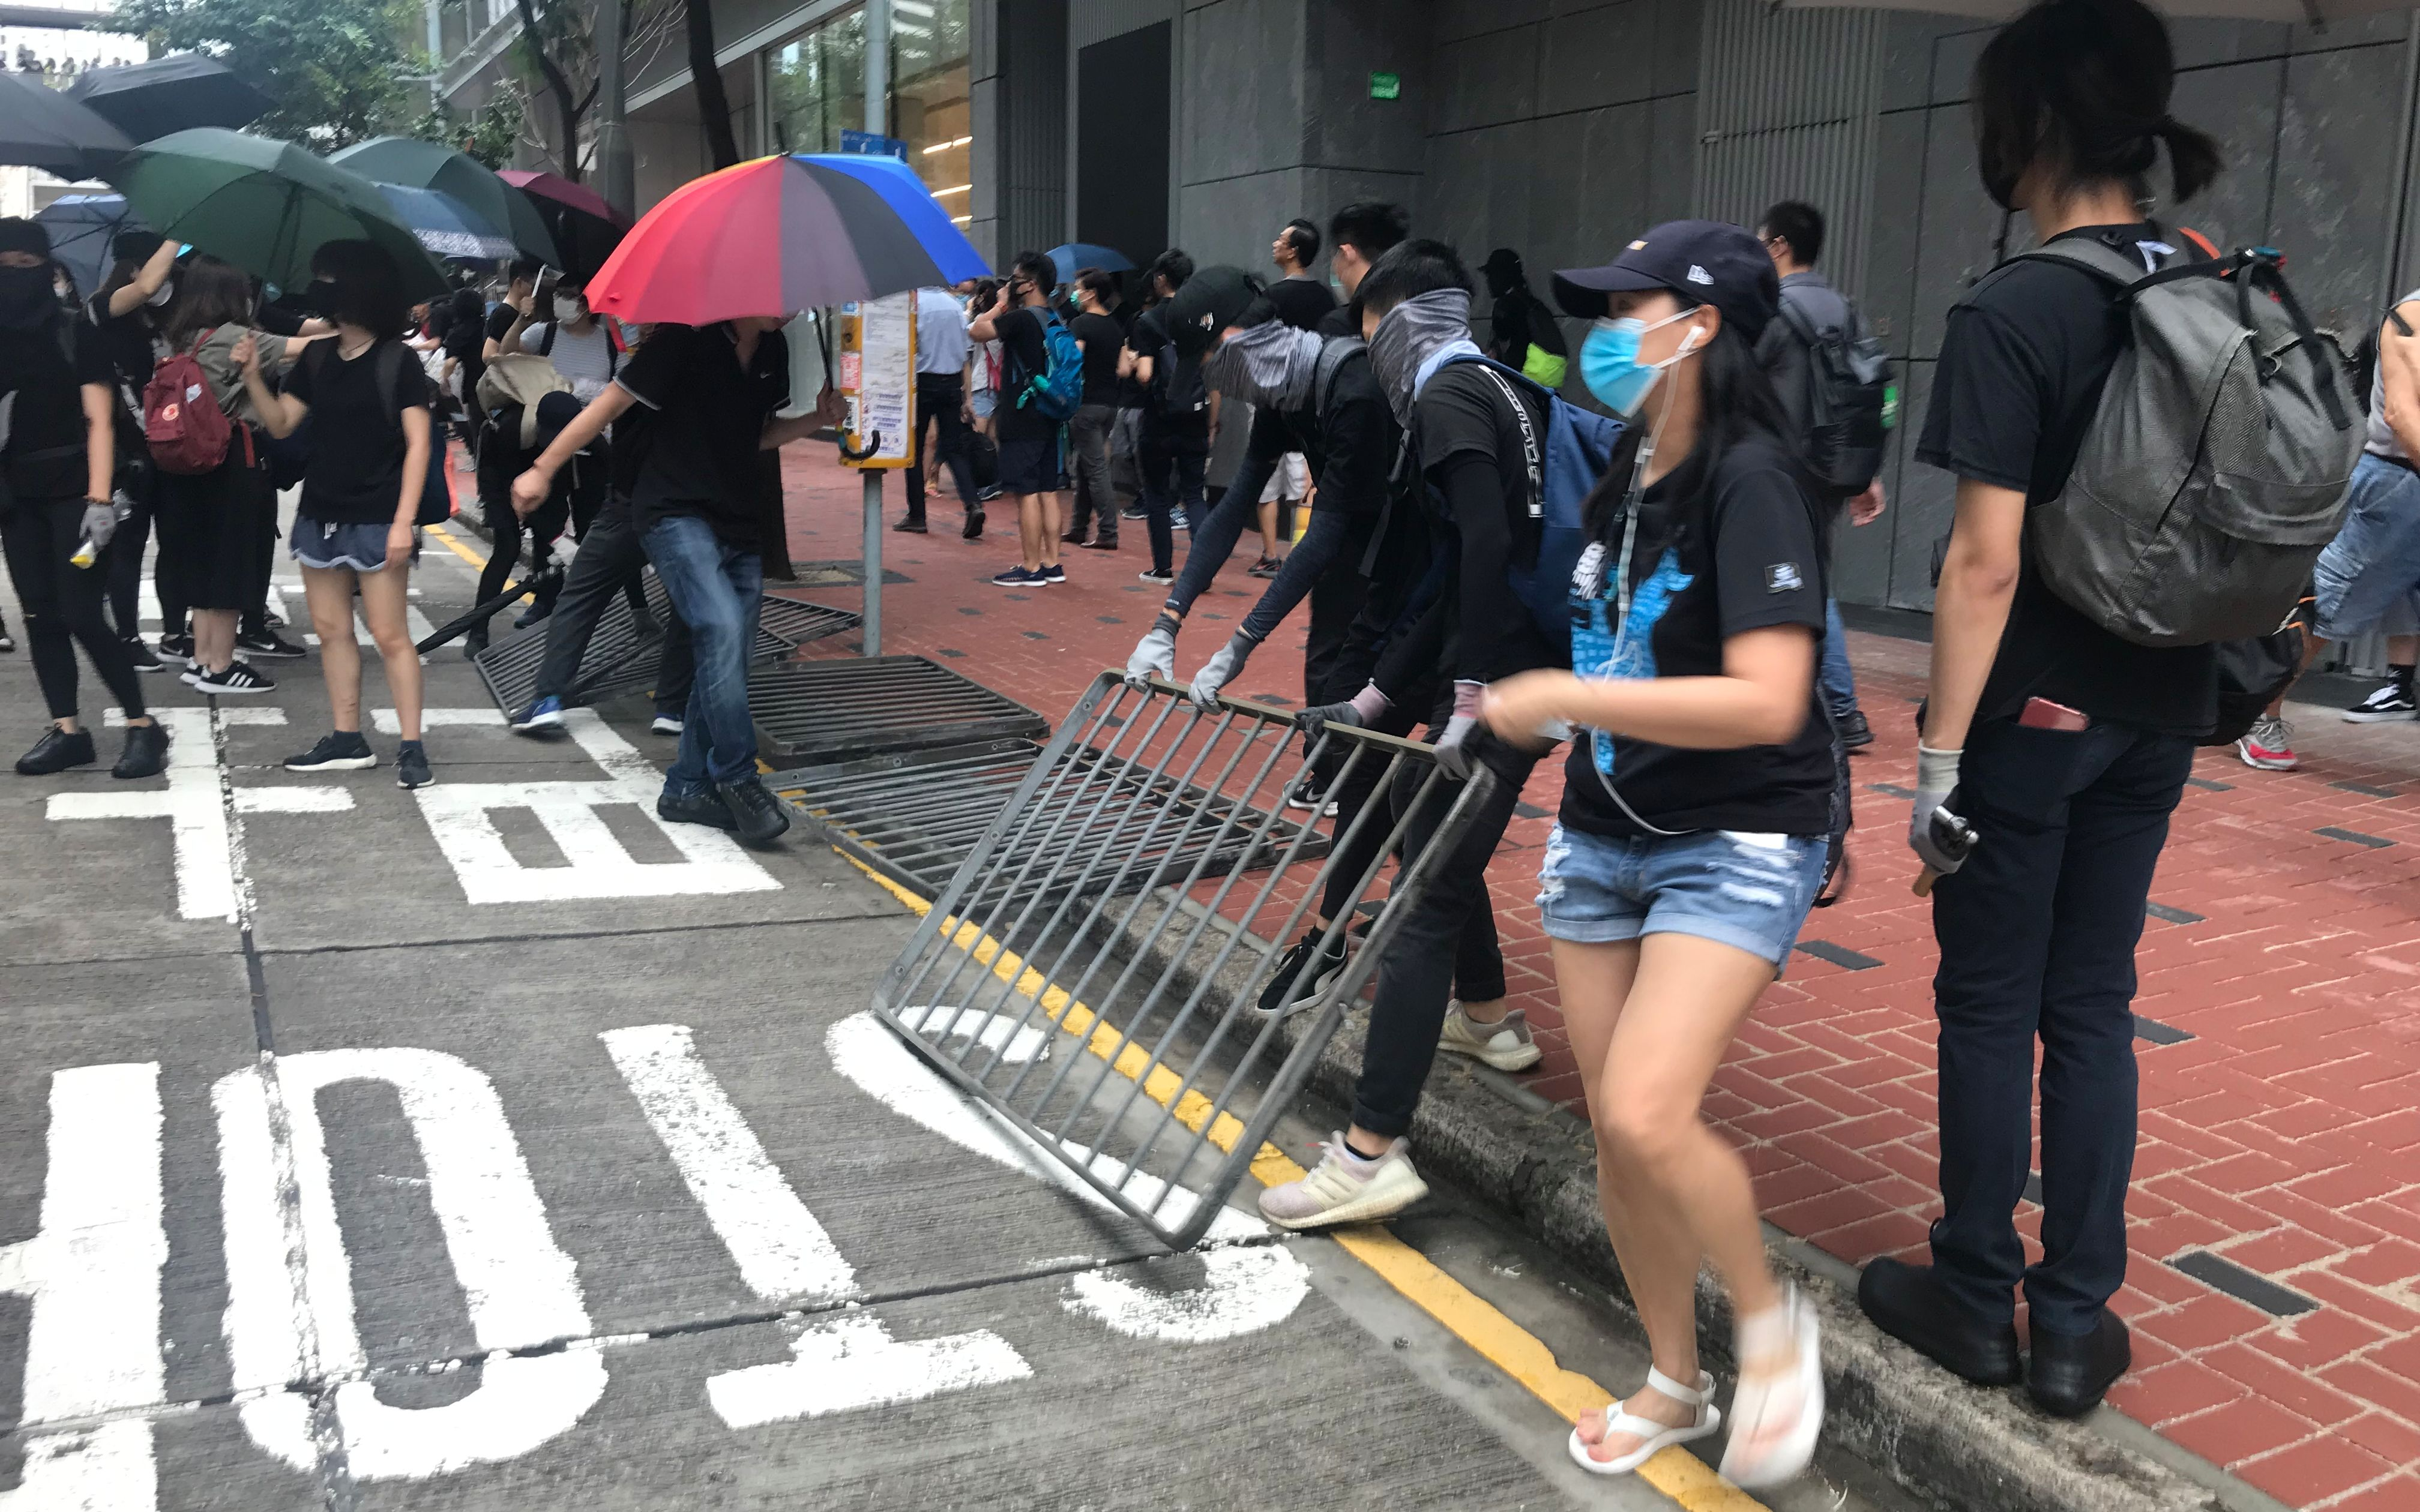 HKSAR gov't severely condemns illegal, violent acts of radical protesters